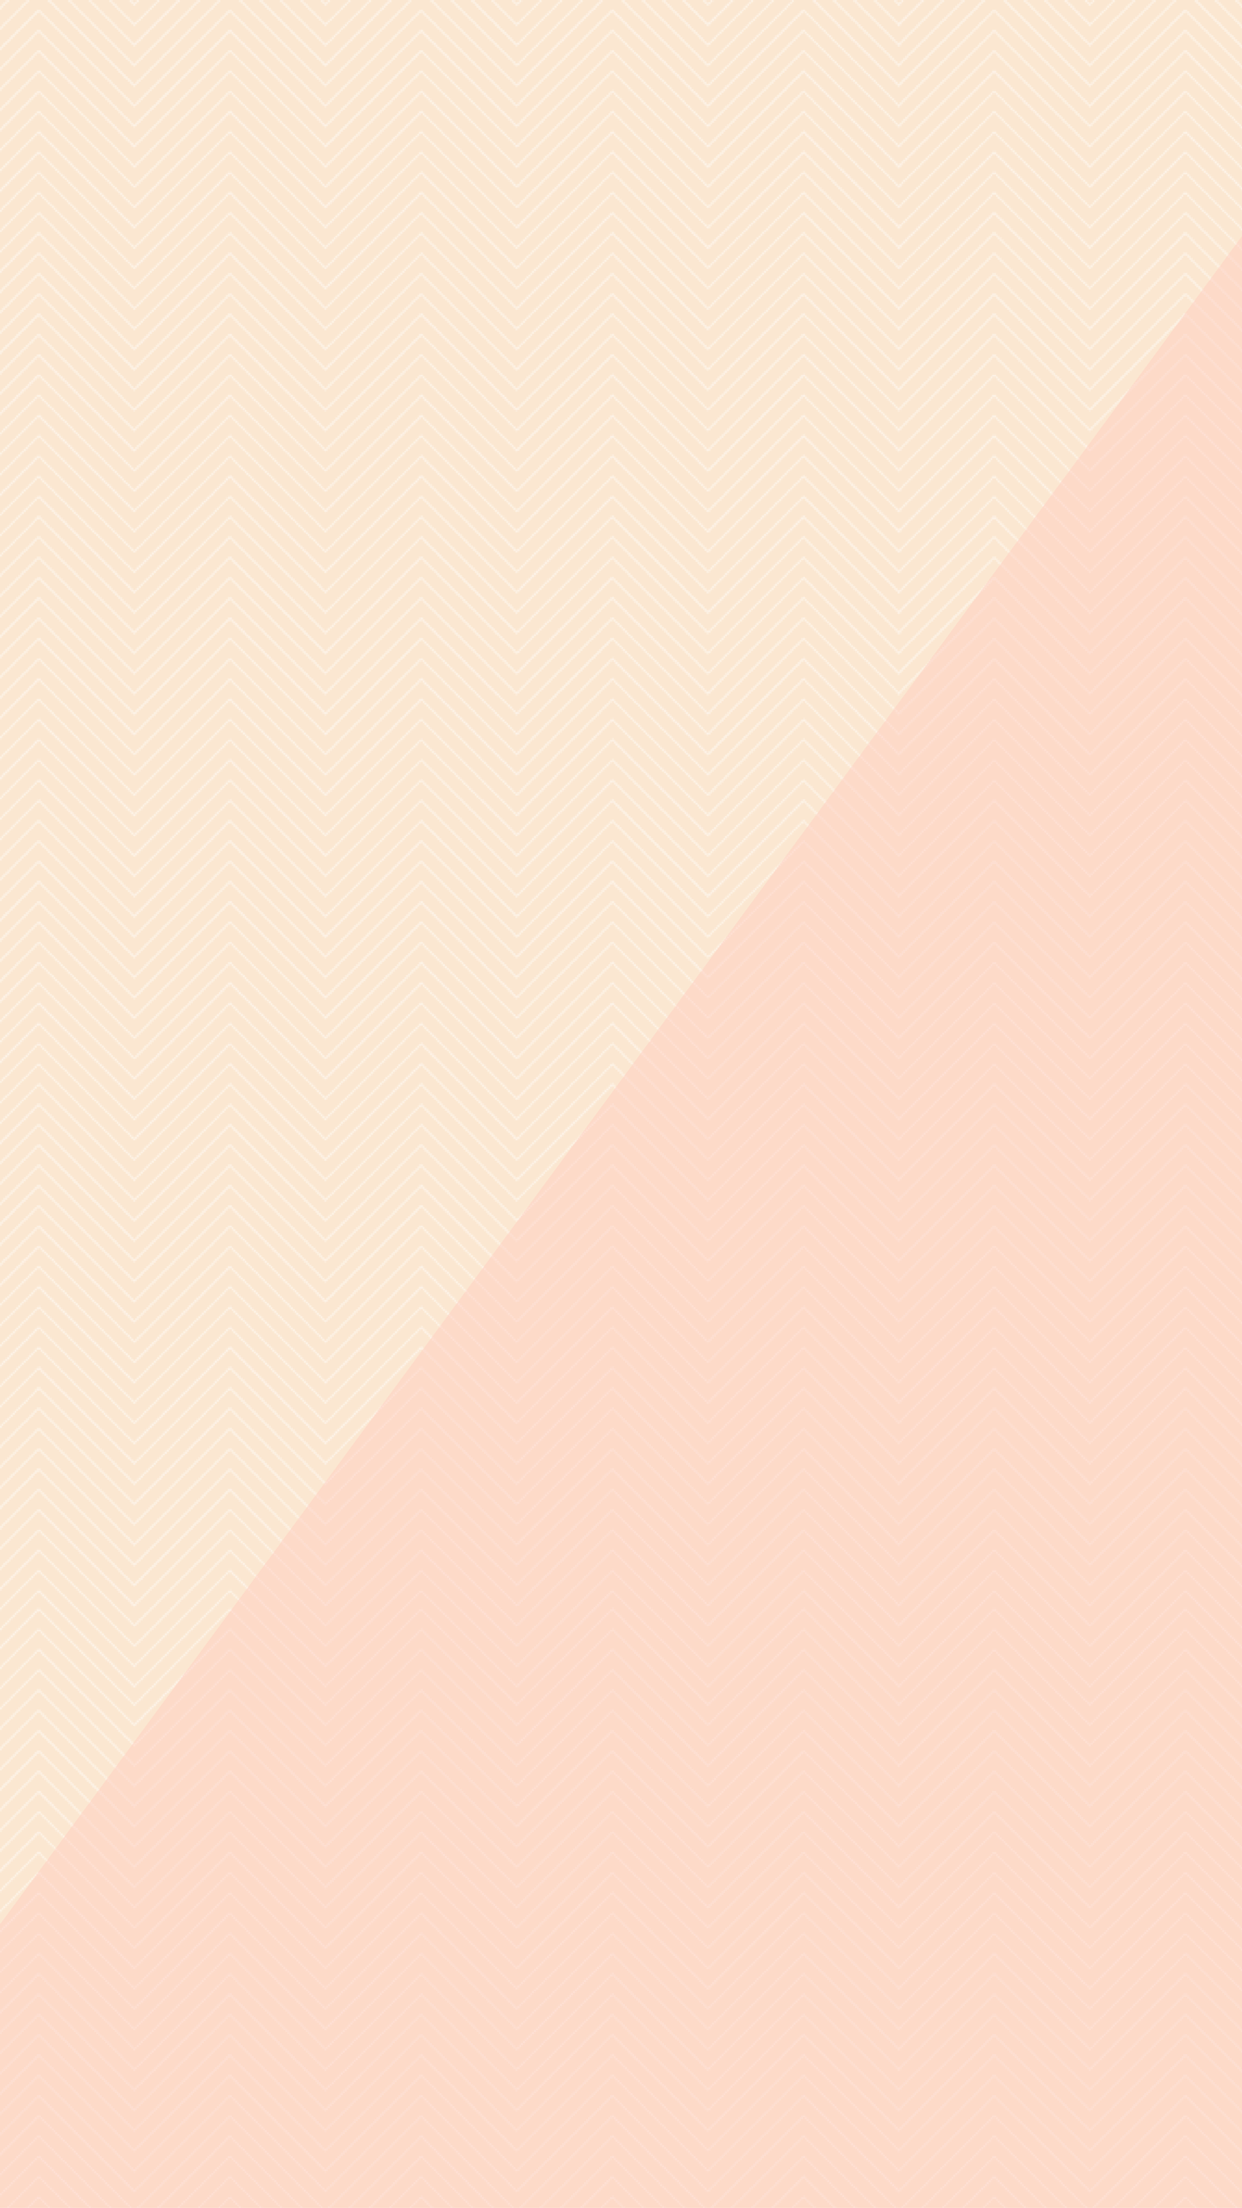 peach color wallpaper  Free Color Block iPhone Wallpapers - Meadow Sweet Lane